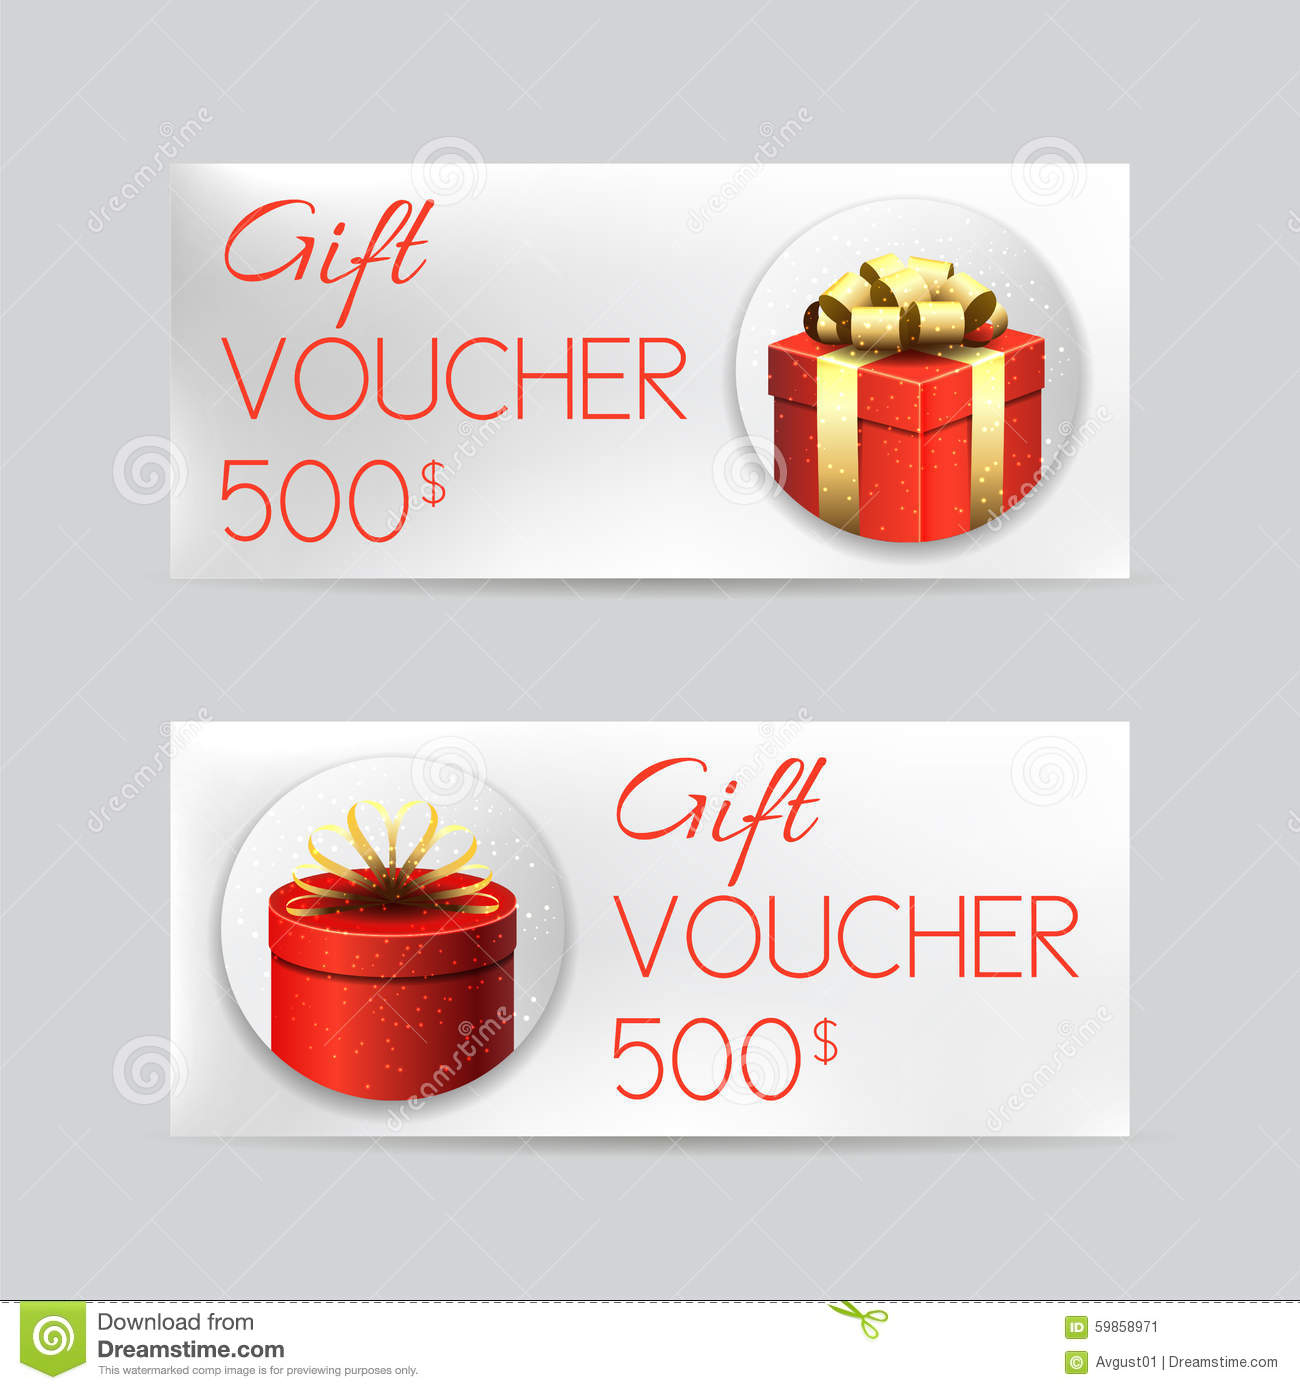 gift voucher template christmas gifts stock vector image gift voucher template christmas gifts